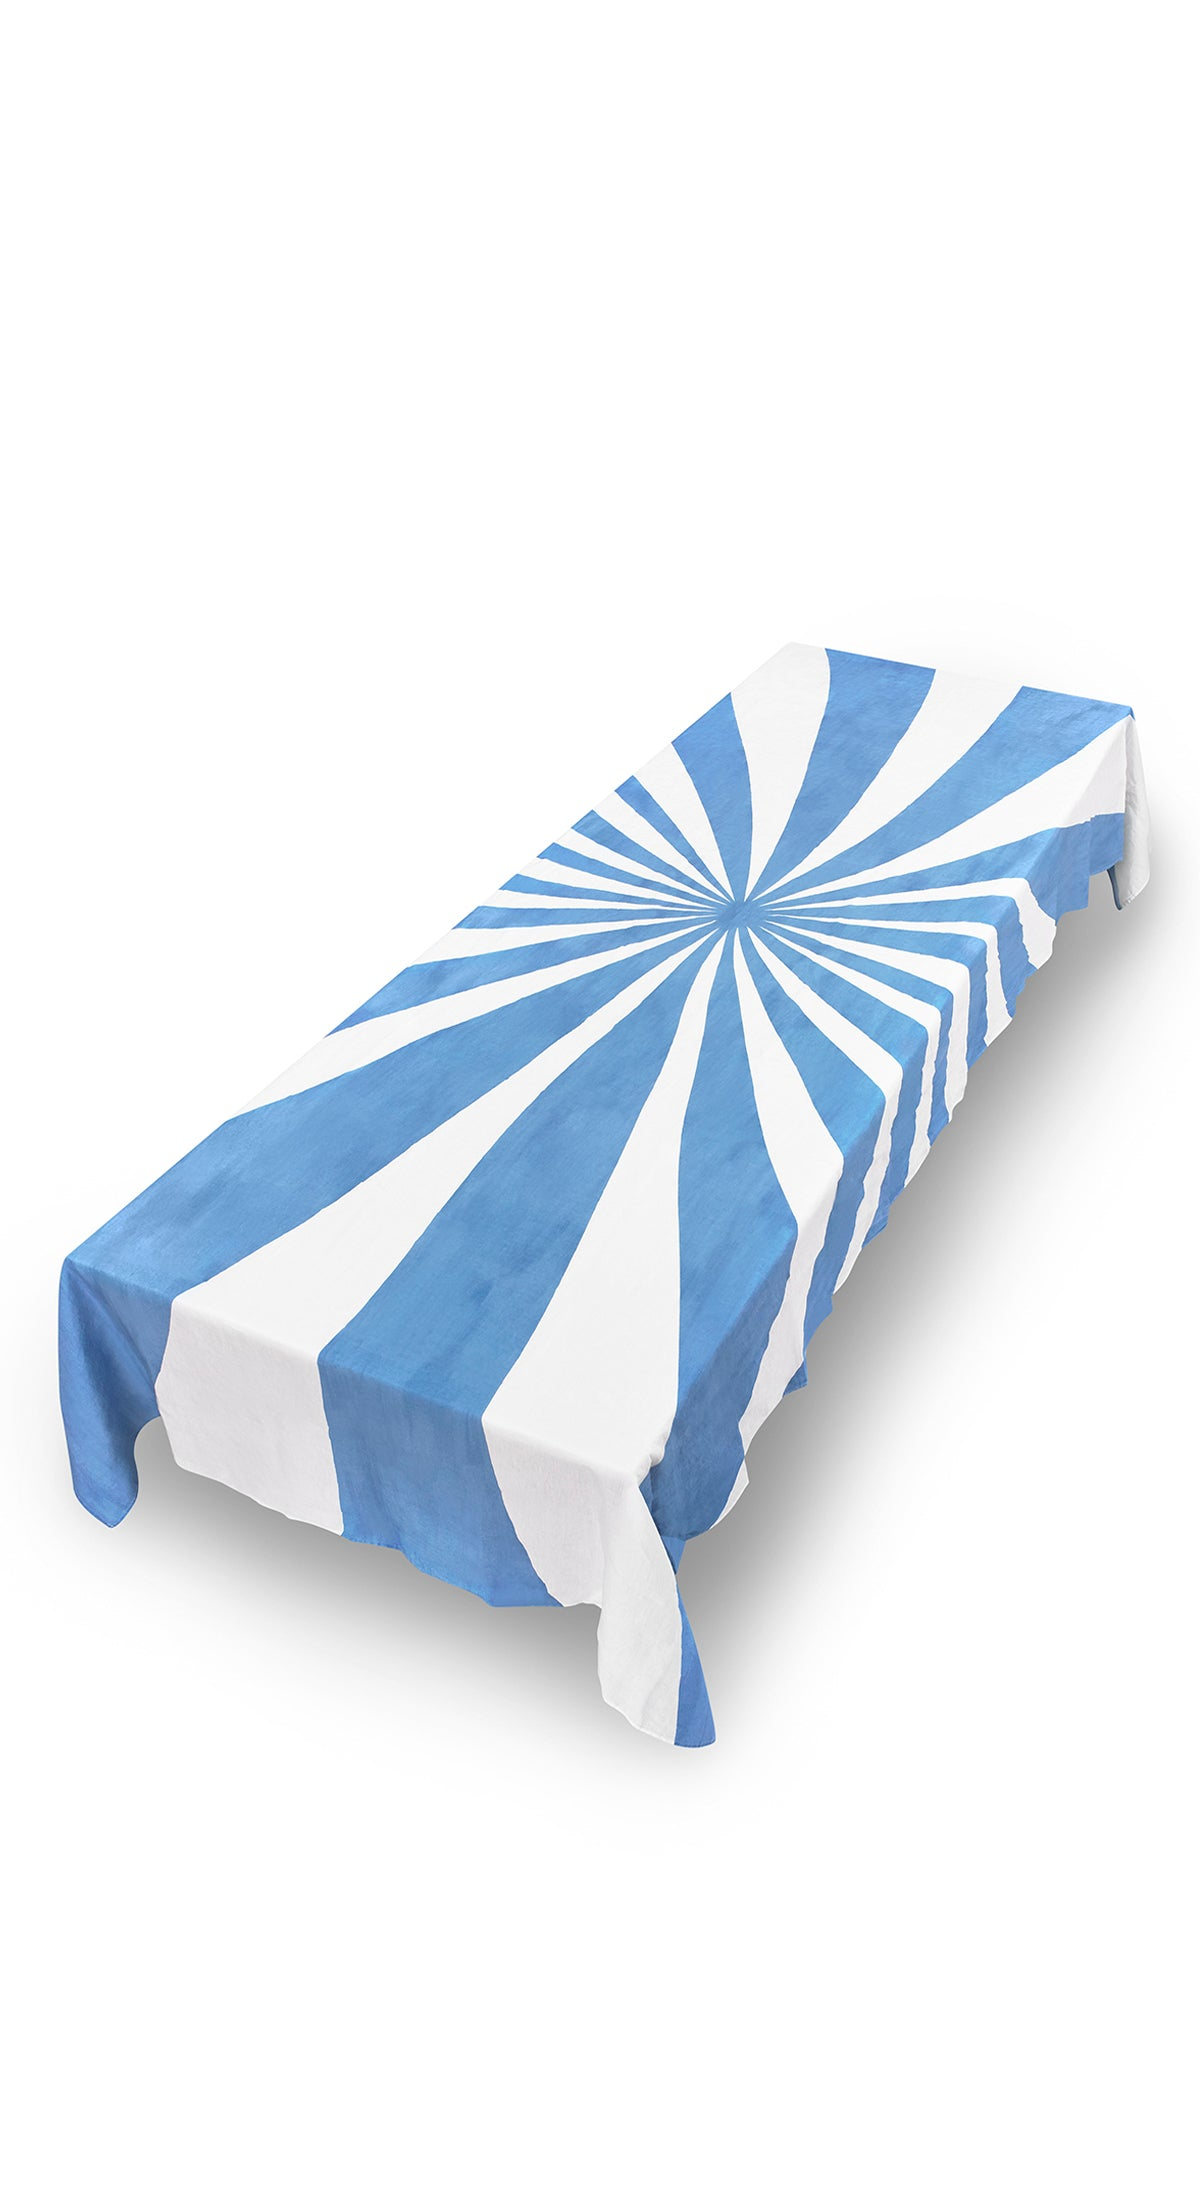 Le Cirque Linen Tablecloth in Blue